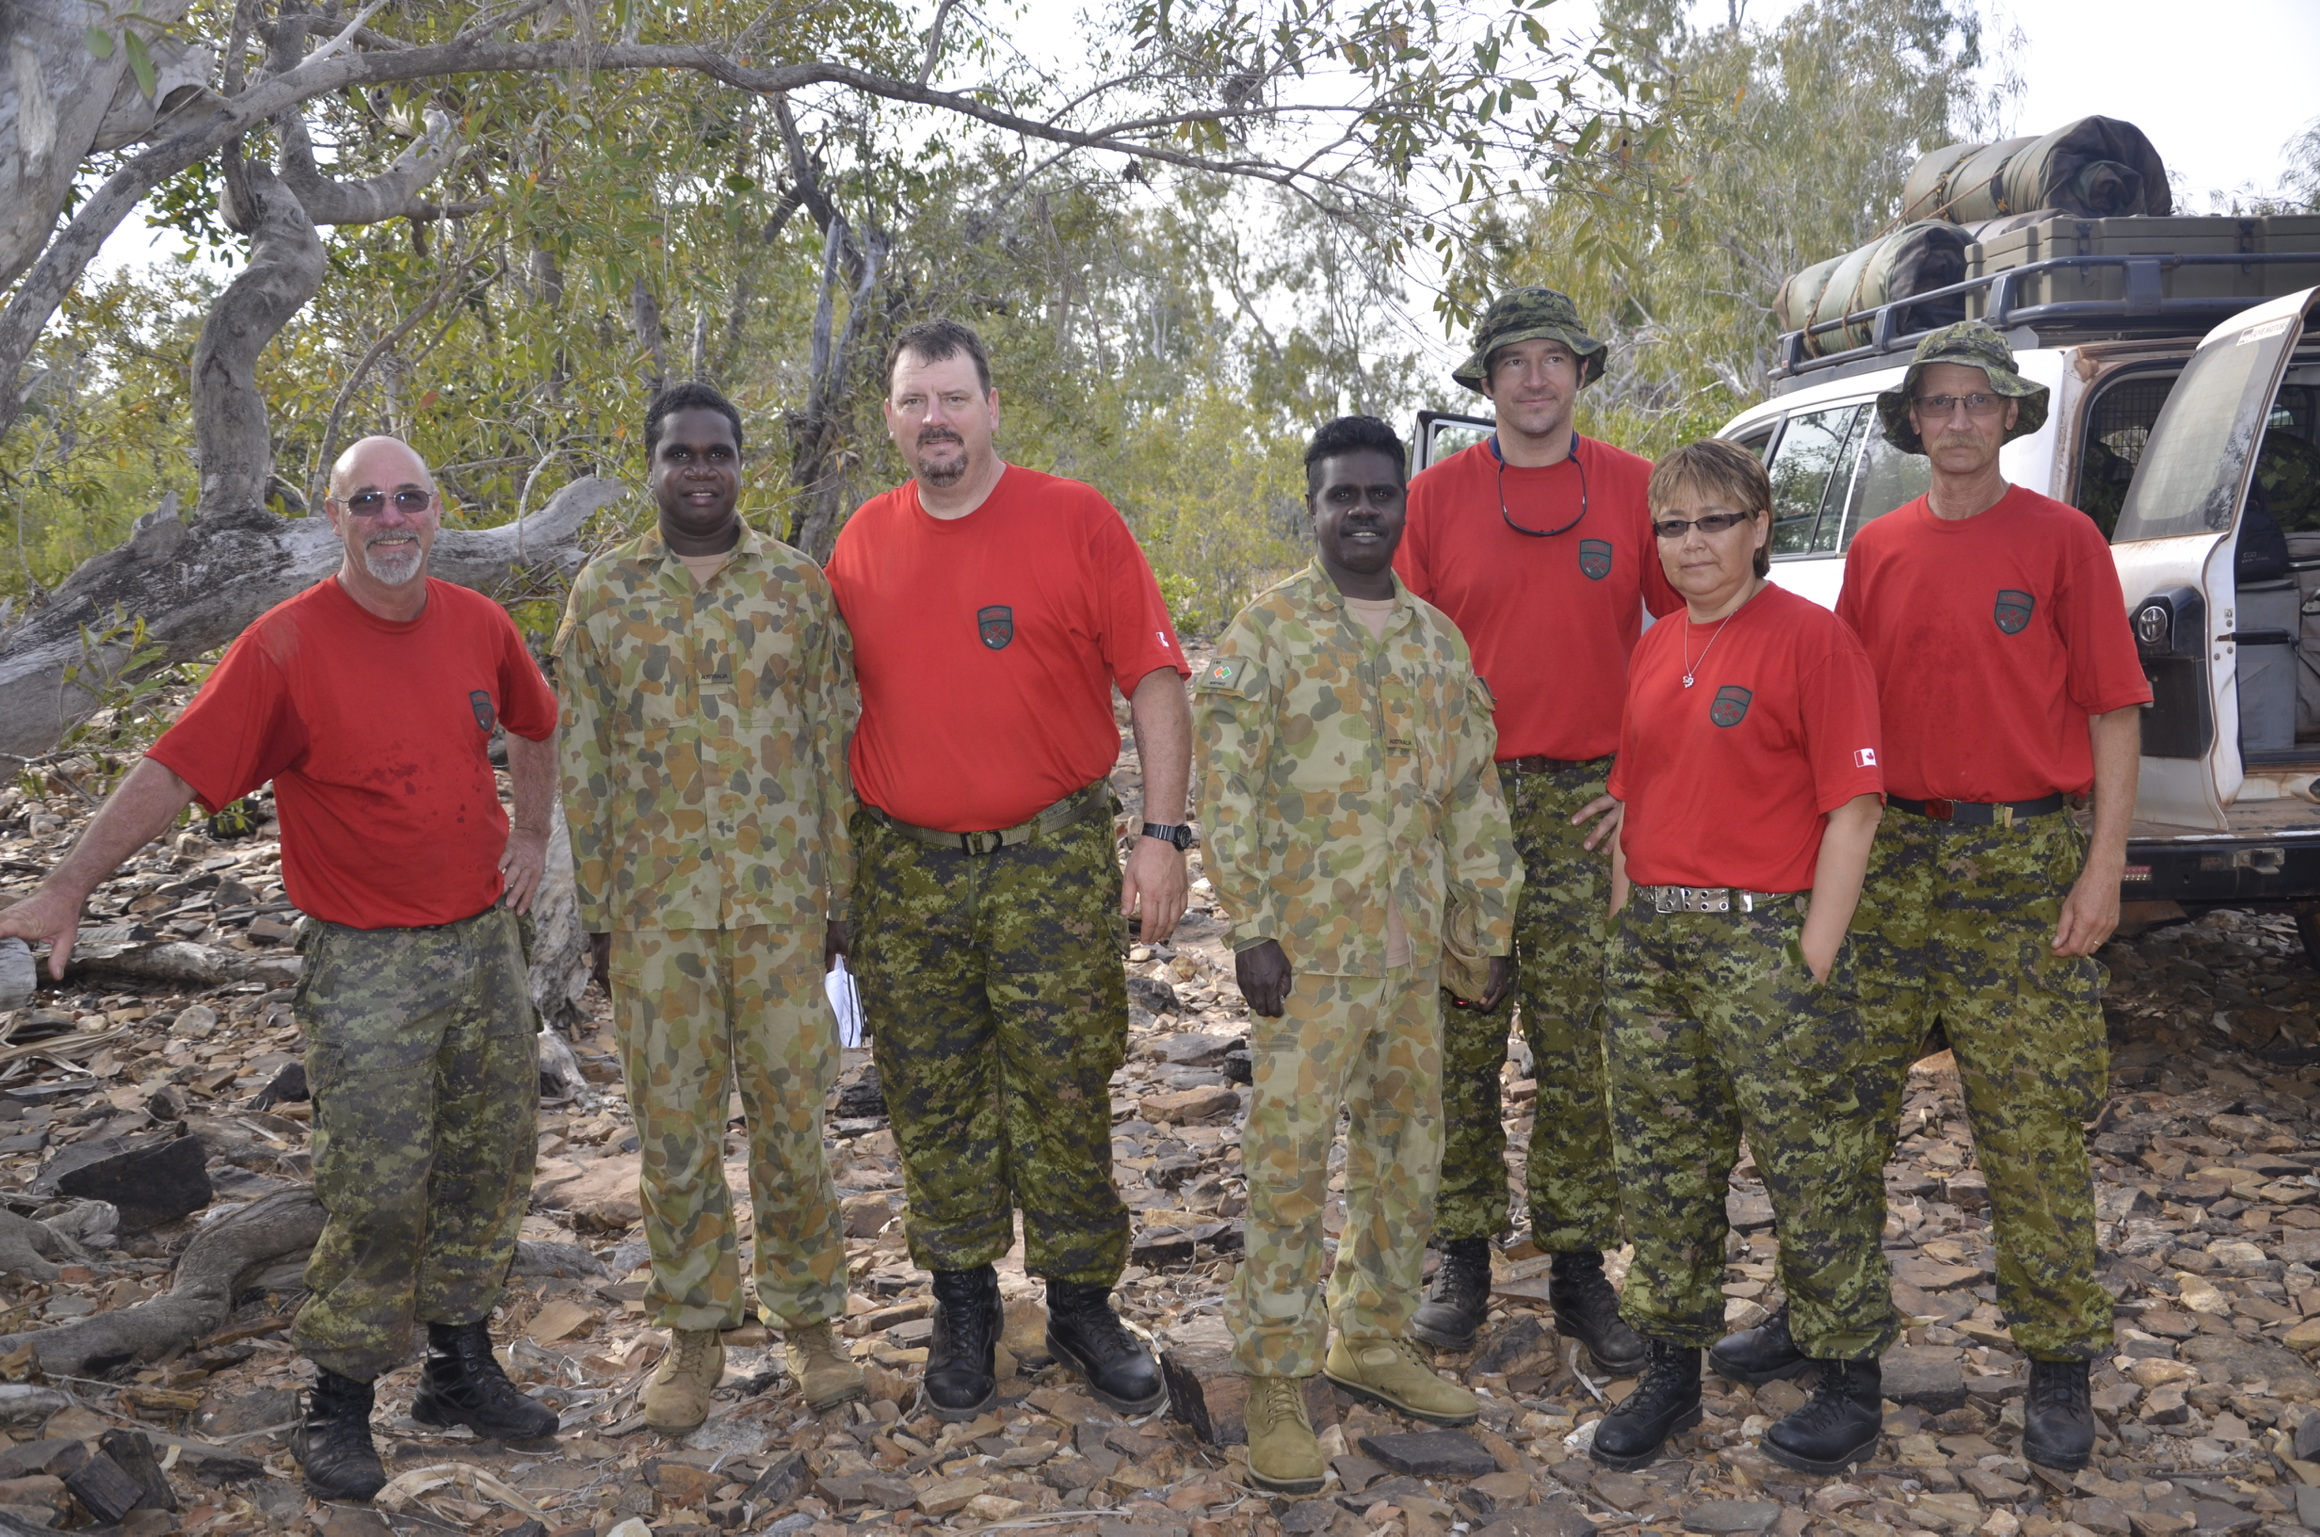 Members of the 4th Canadian Ranger Patrol Group pictured with their Australian counterparts.